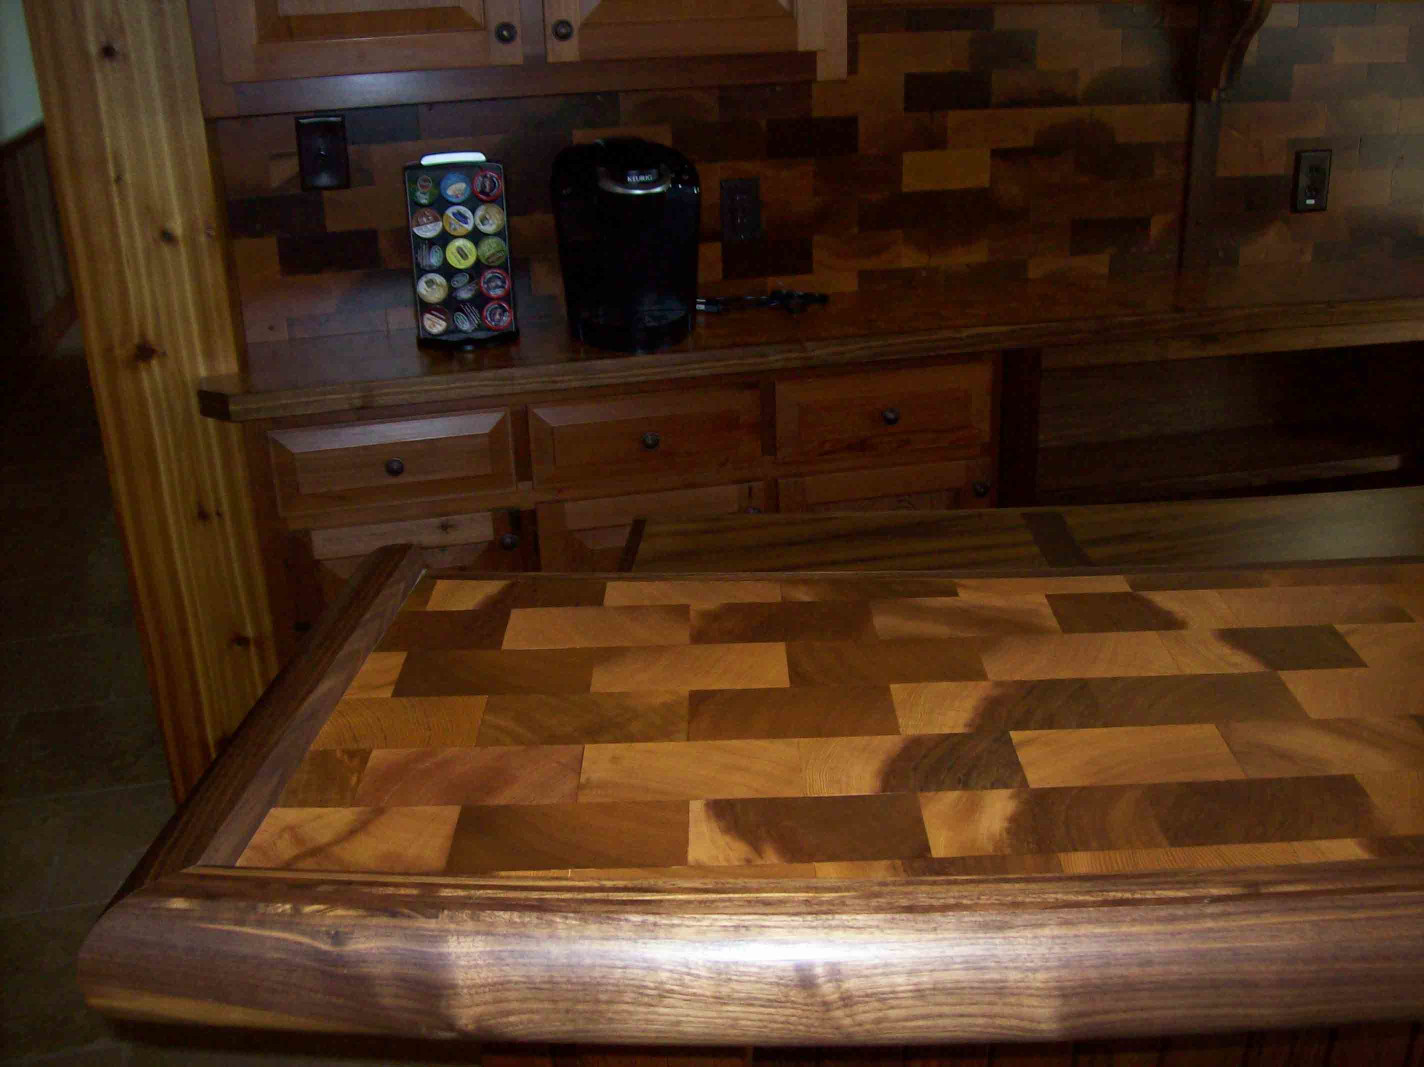 The wood tile countertop is a one of a kind piece.